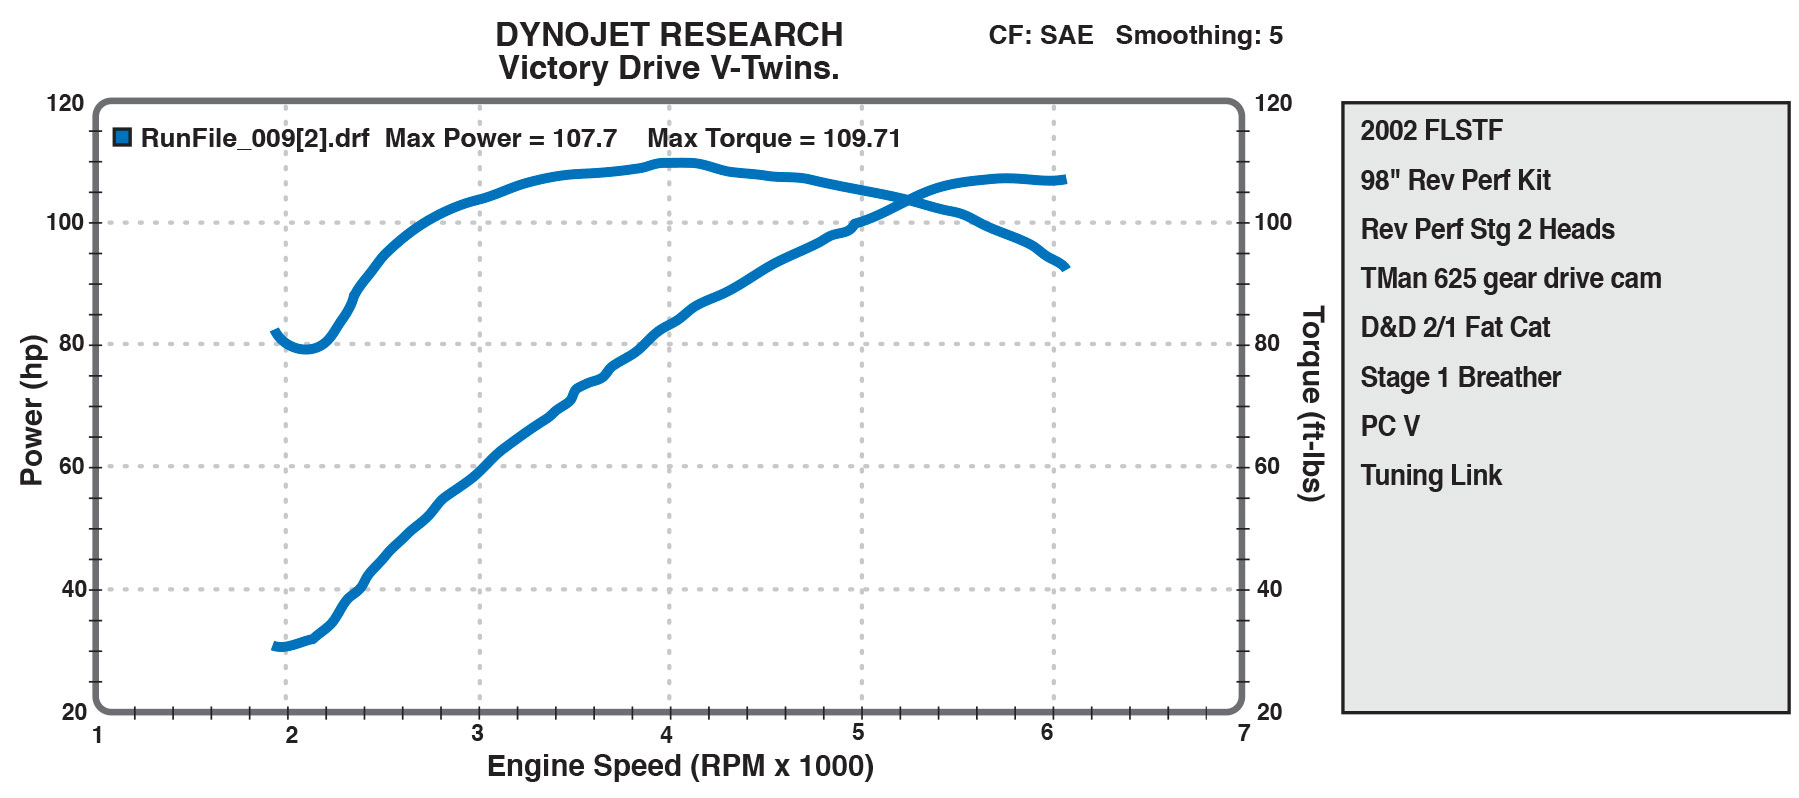 98 CID DYNO SHEET FROM VICTORY DRIVE V-TWIN